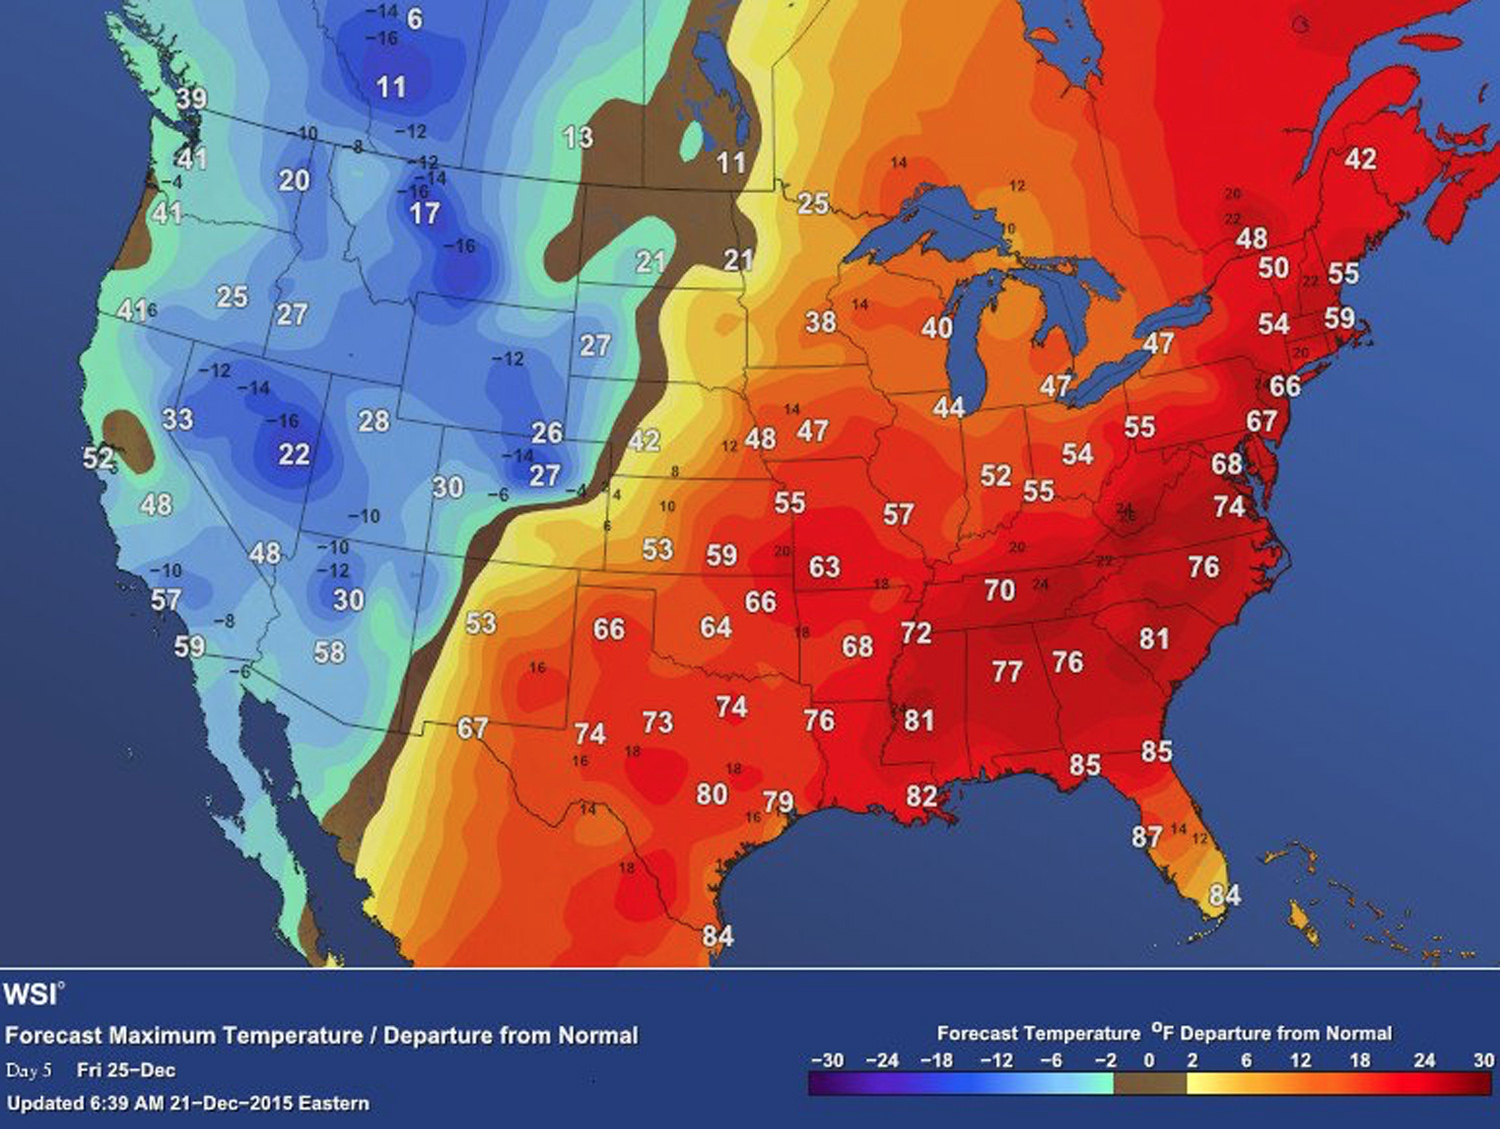 Weather Maps Ilrate The Strangest Christmas Weather In History Wsi Forecast Inhabitat Green Design Innovation Architecture Green Building